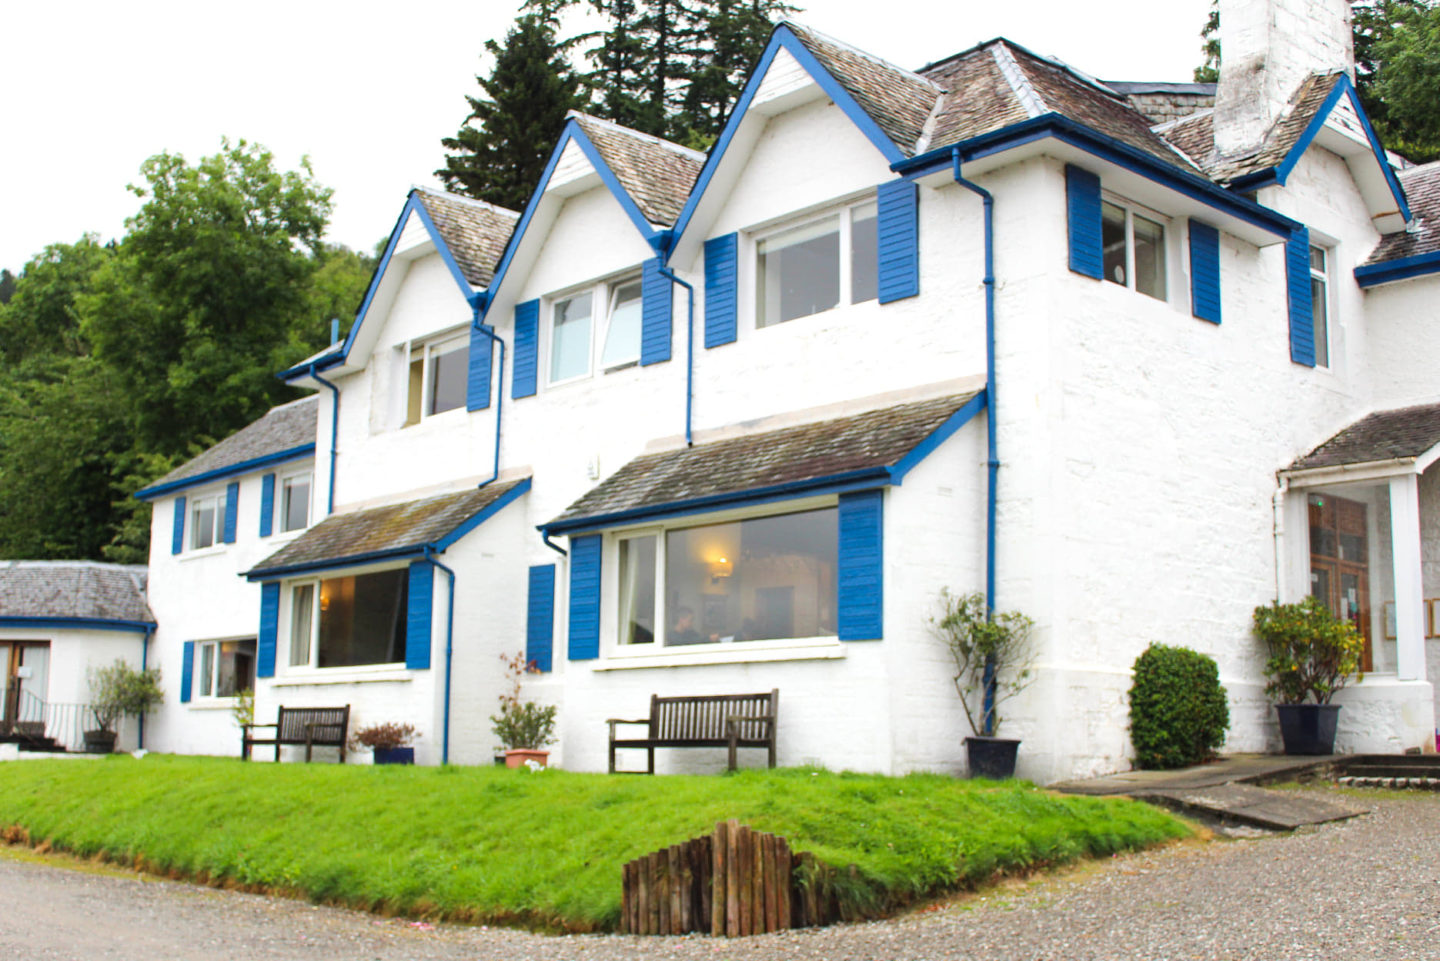 The Meall Reamhar | The Four Seasons Hotel, St Fillans